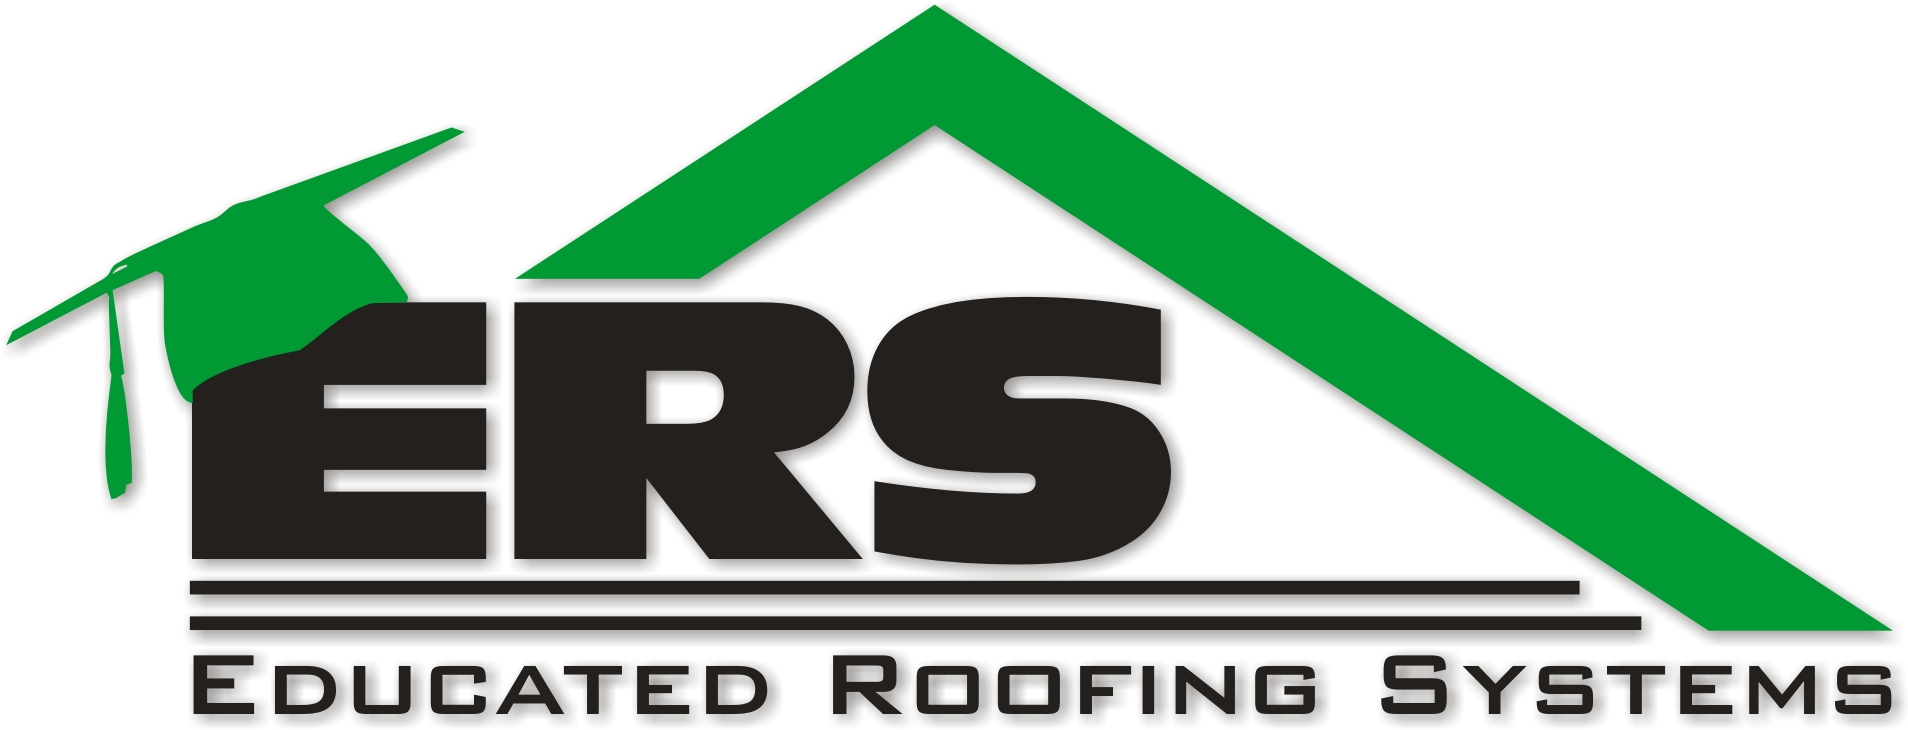 Educated Roofing Systems